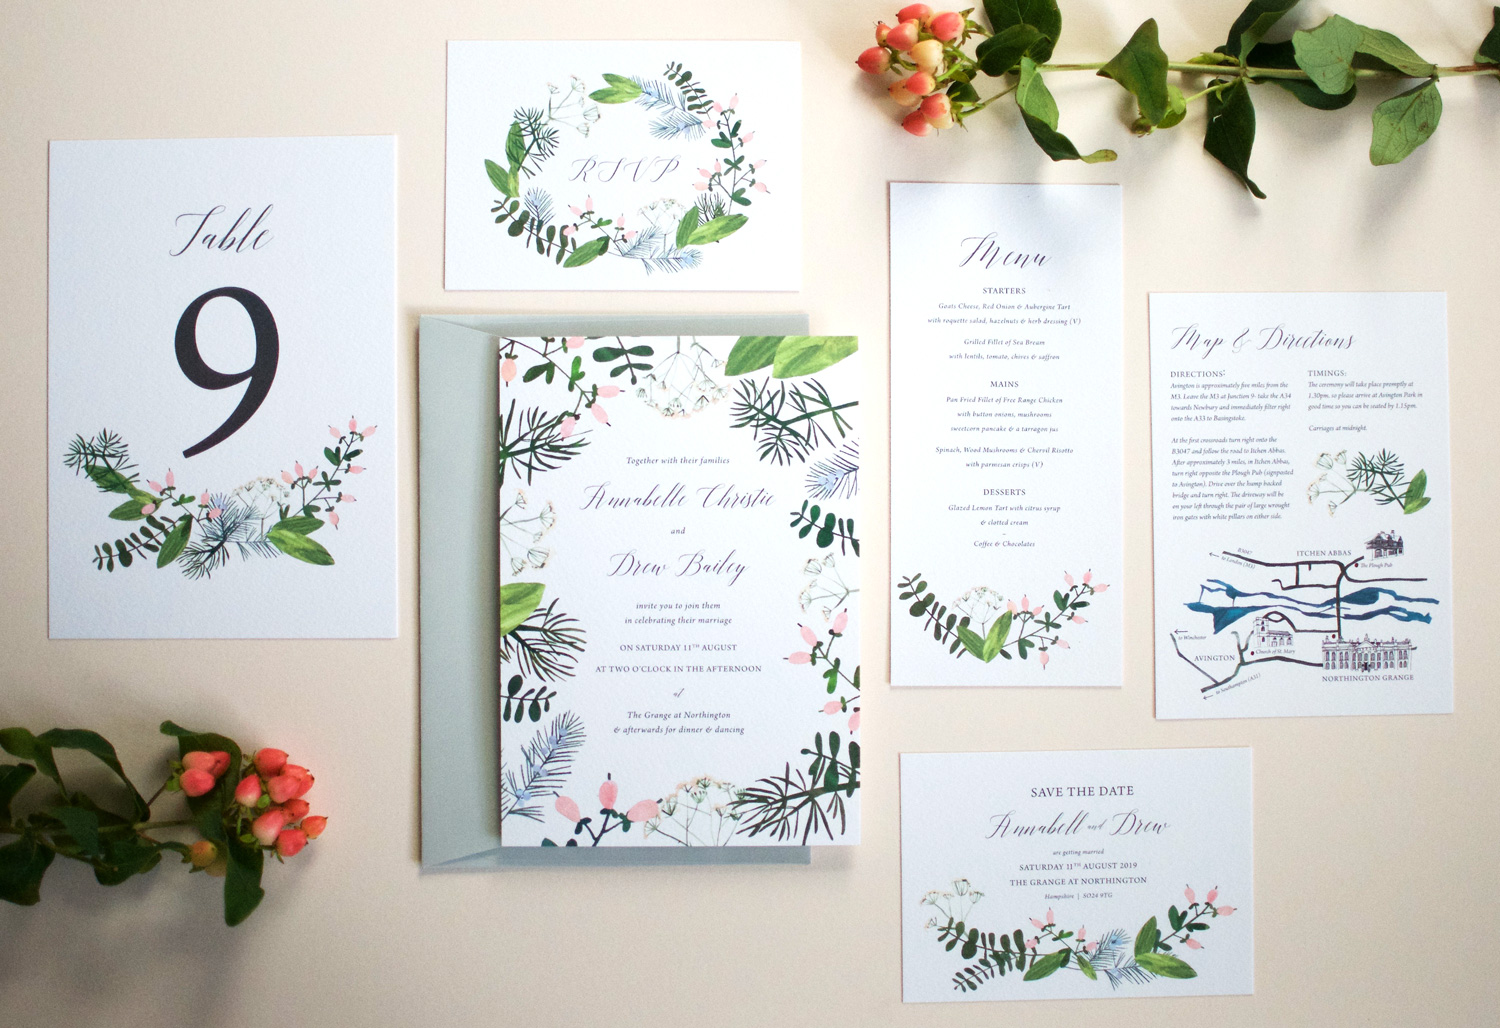 Photo credit: http://www.hollyhocklane.co.uk as featured on Botanical Paperworks